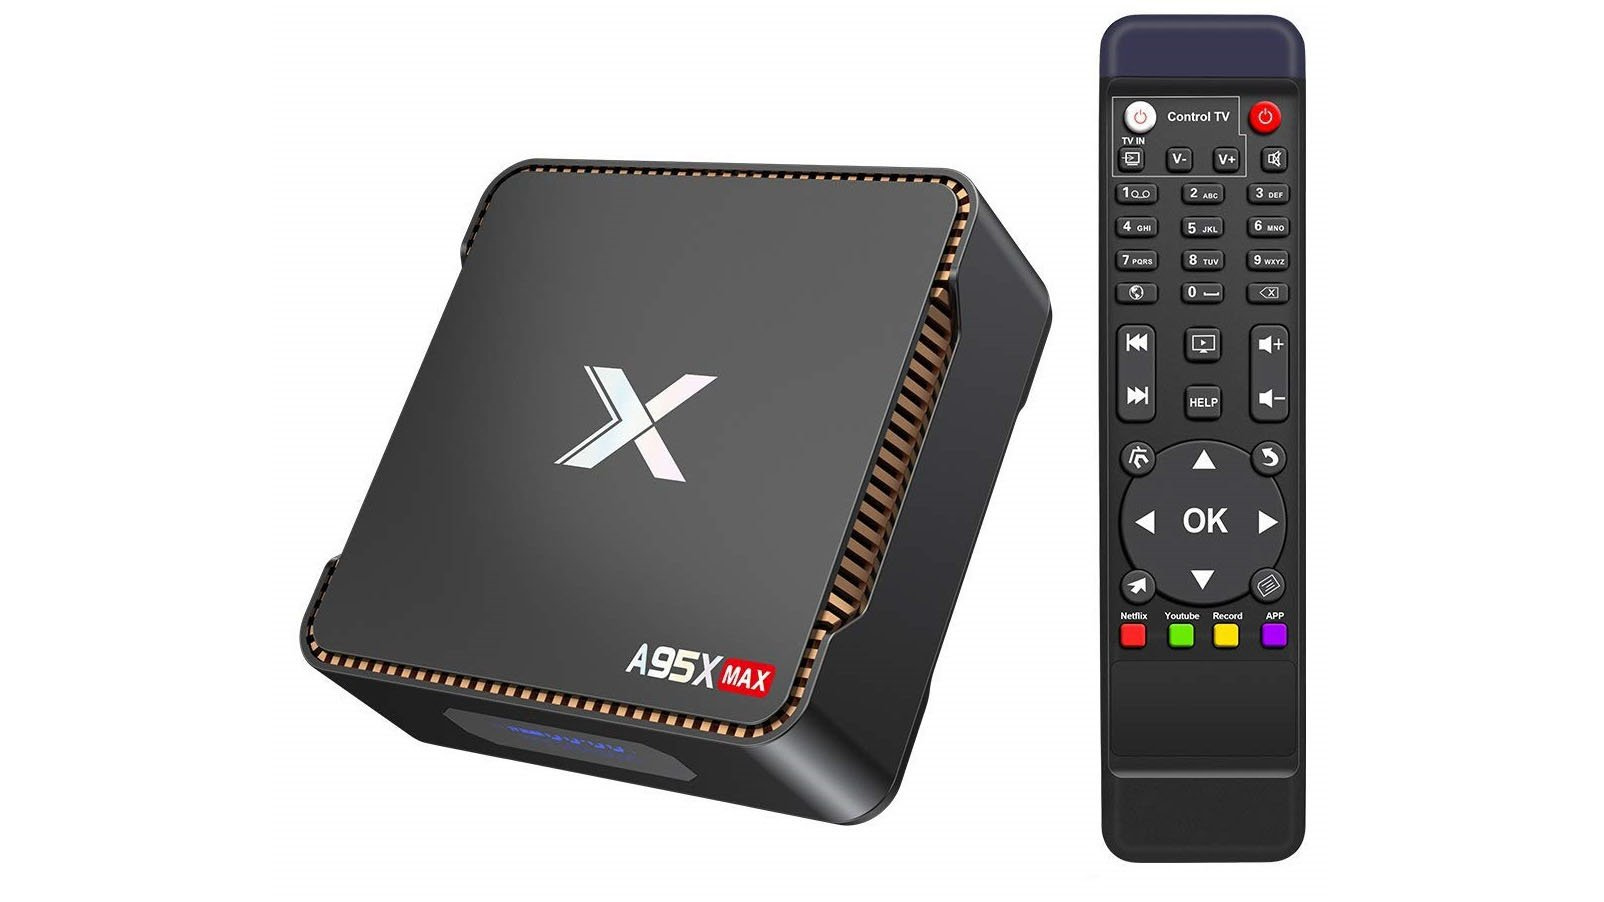 Best Android TV box 2019: The best Android TV devices for